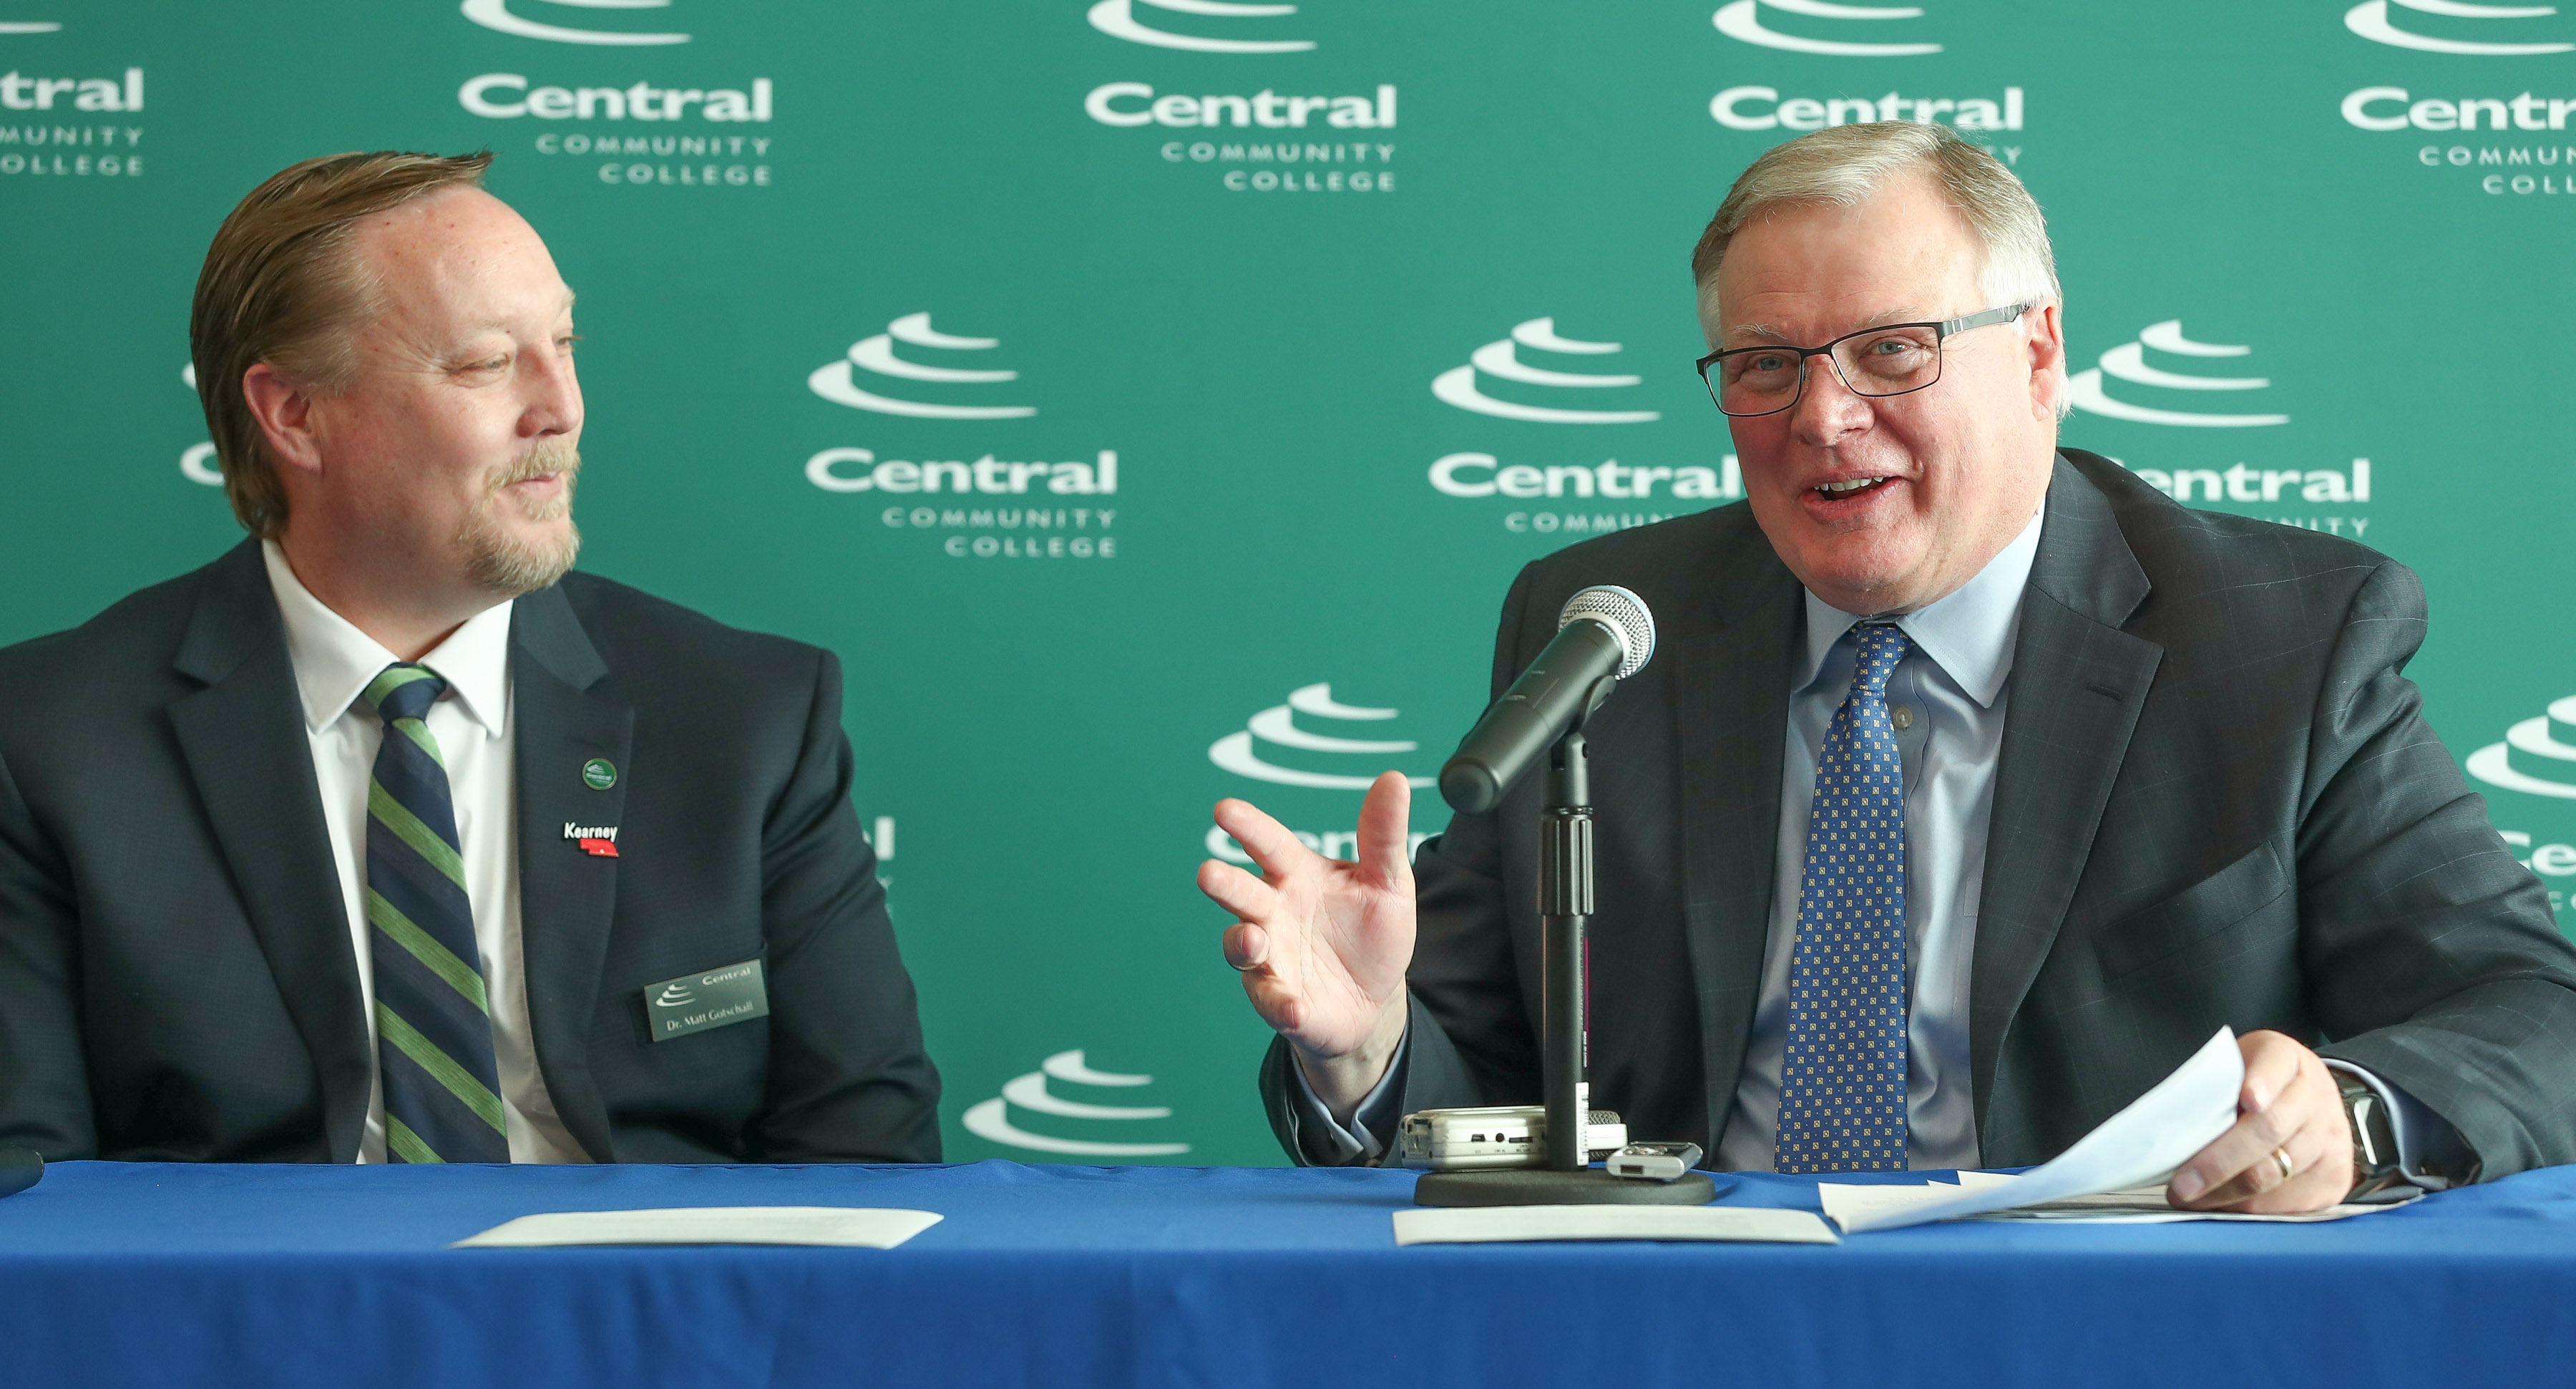 Central Community College President Matt Gotschall, left, and UNK Chancellor Doug Kristensen are pictured in February 2019 during an event announcing the CCC-UNK Pathway program, which created a new enrollment option for students who want to attend UNK but initially fall short of admissions requirements.